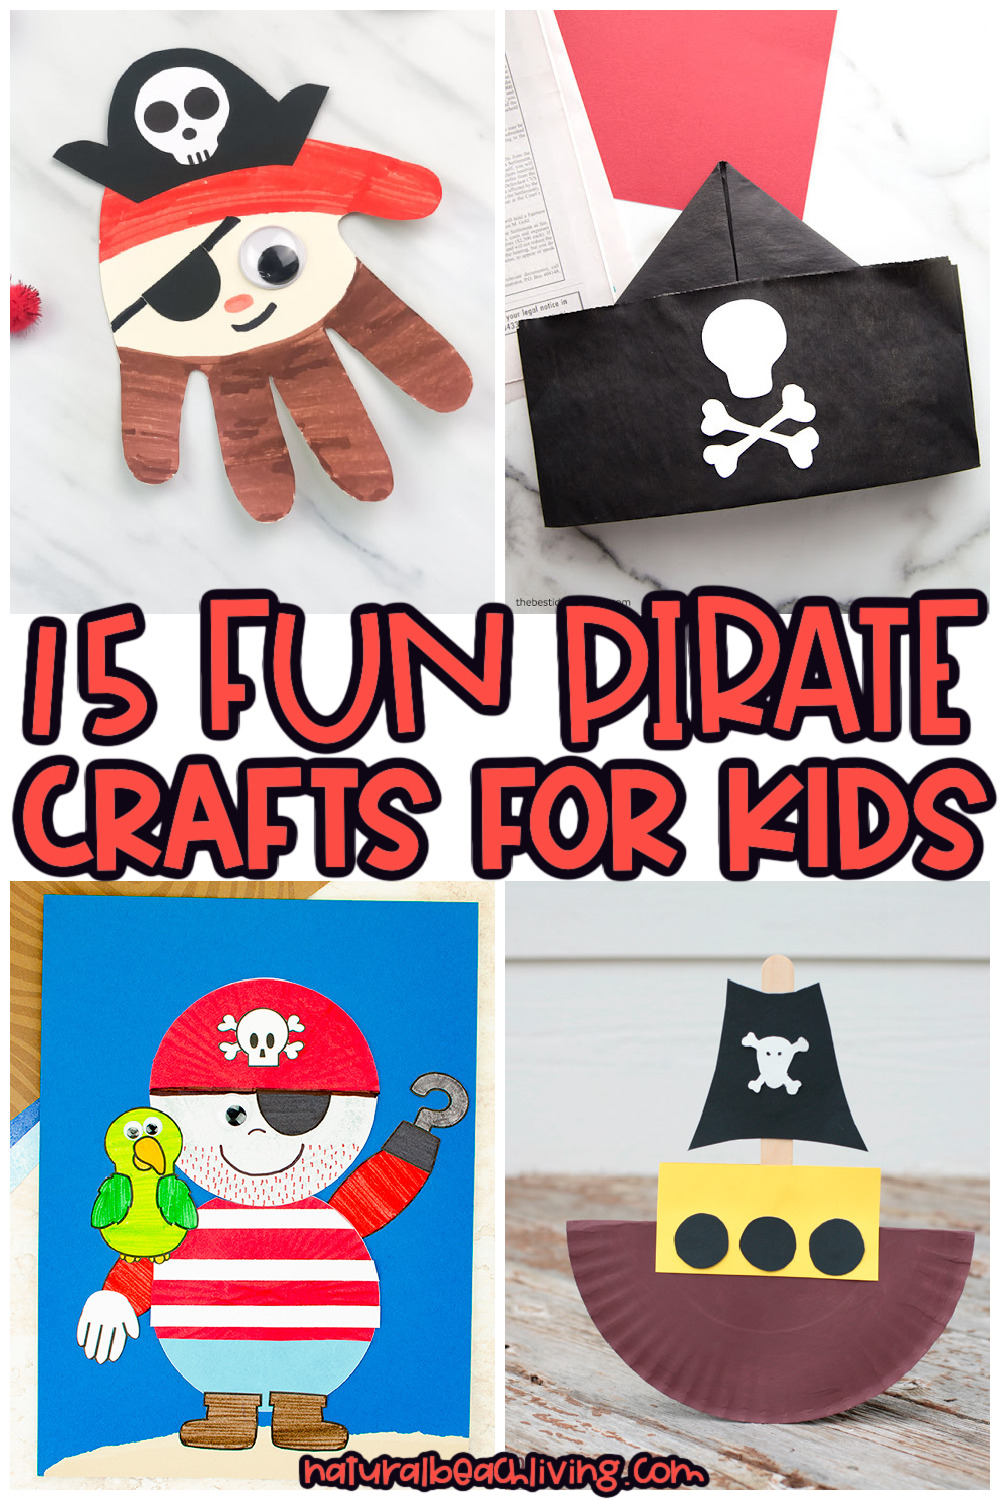 15+ Pirate Crafts for Kids – The Best Crafts and Activities